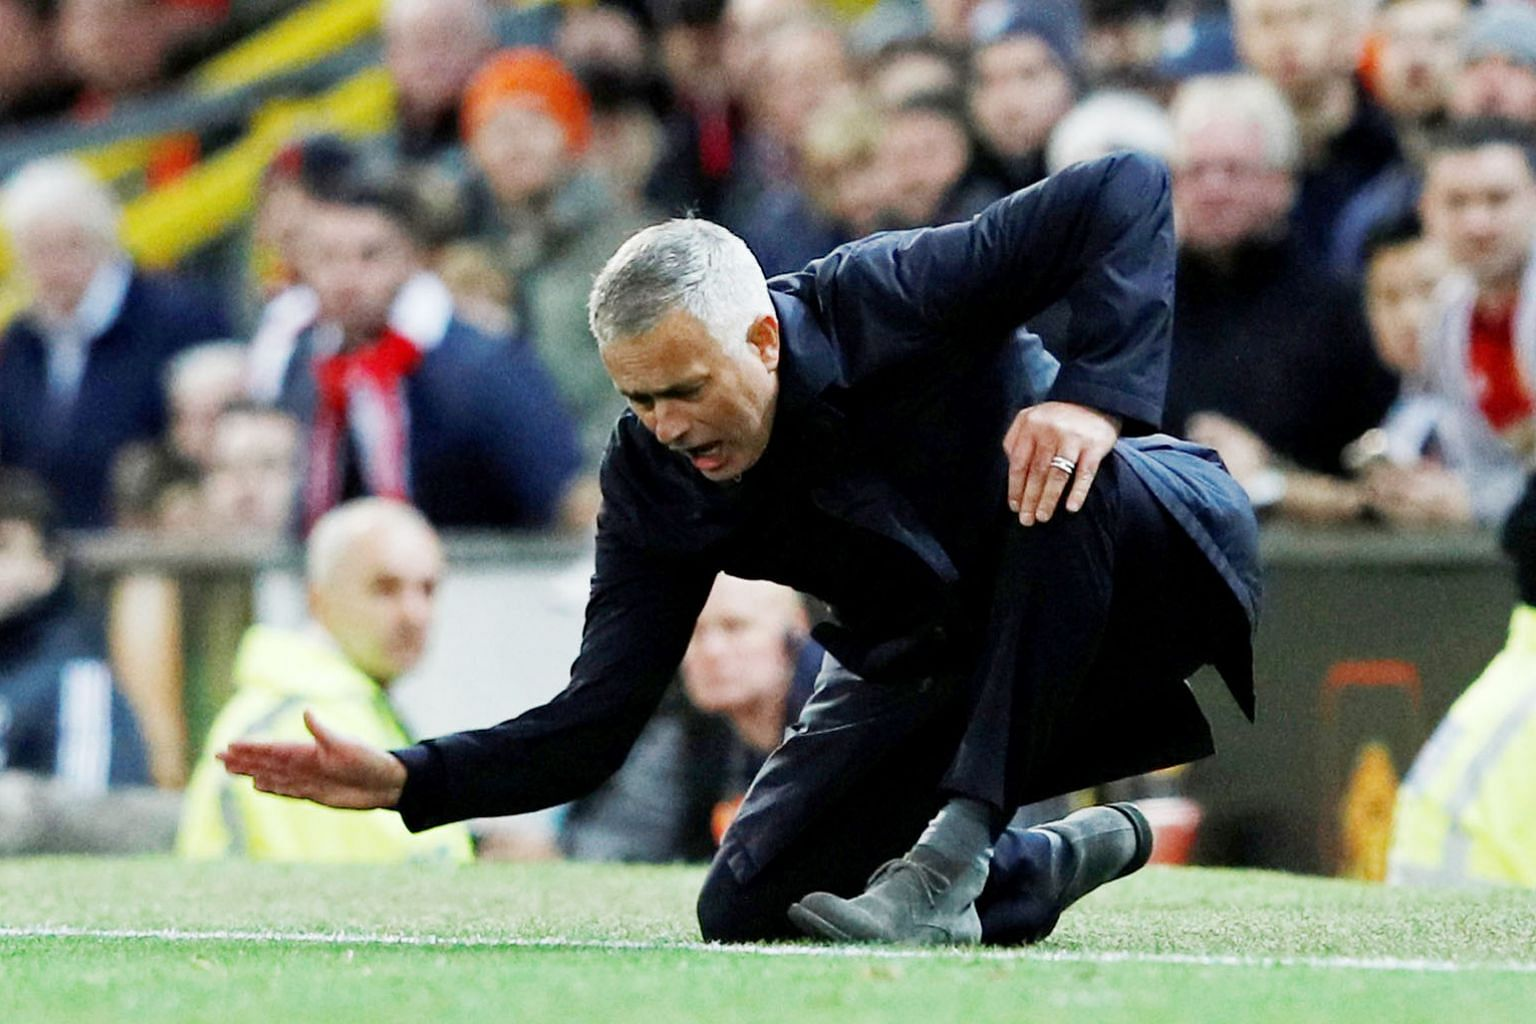 Manchester United manager Jose Mourinho, seen complaining about a passage of play against Newcastle, was charged for language used after his side's 3-2 win against the Magpies.